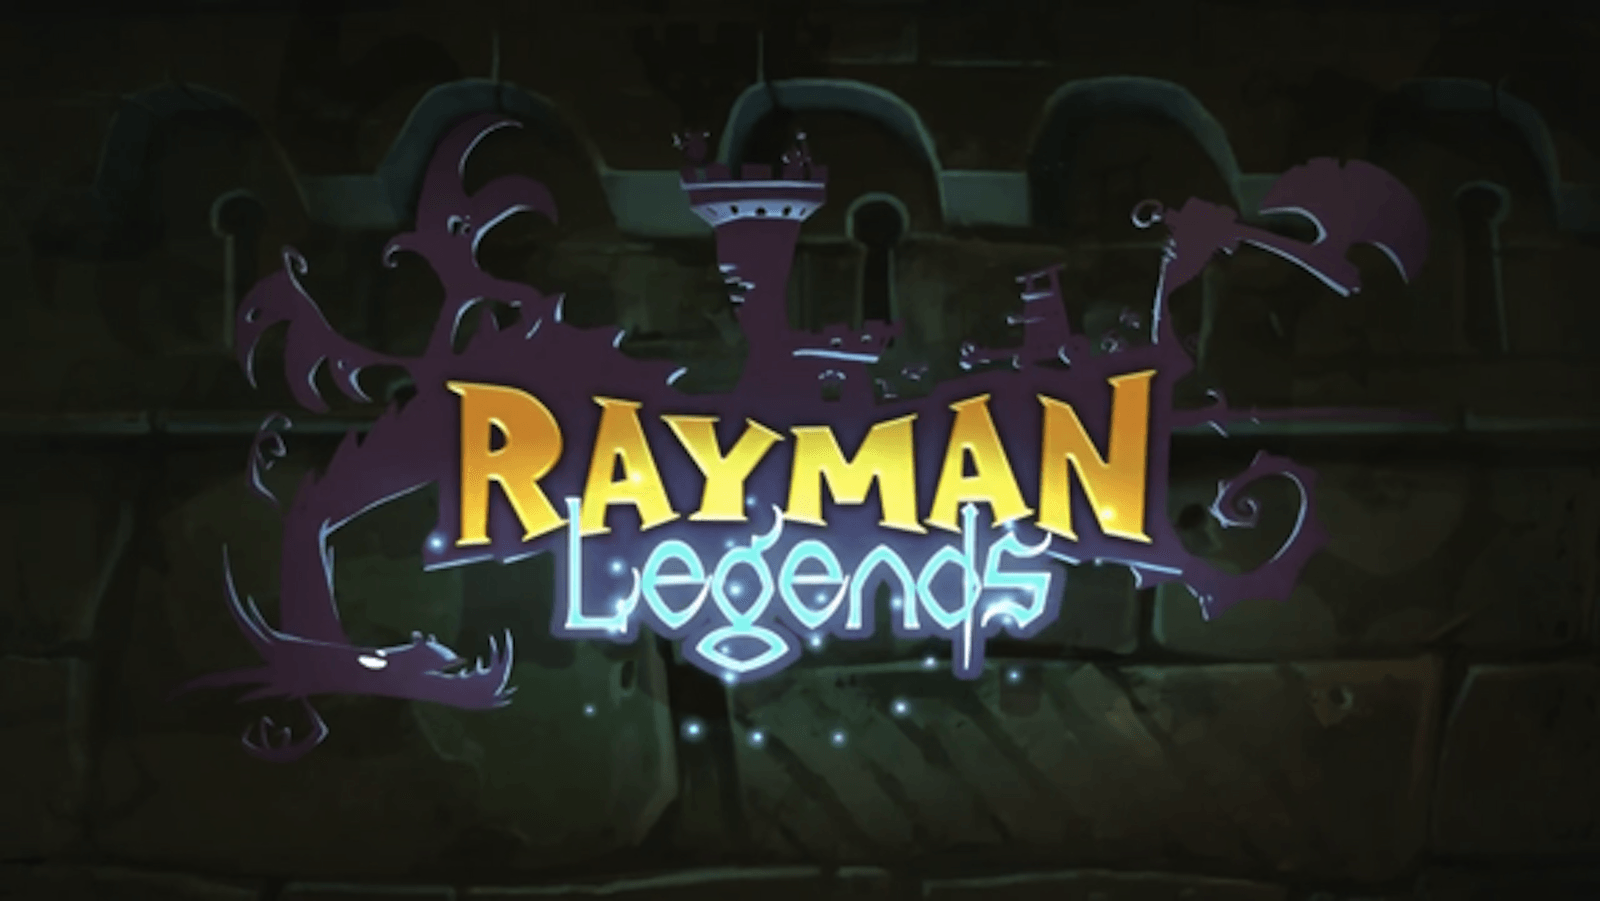 Rayman Legends Fans Should Have Seen This Coming